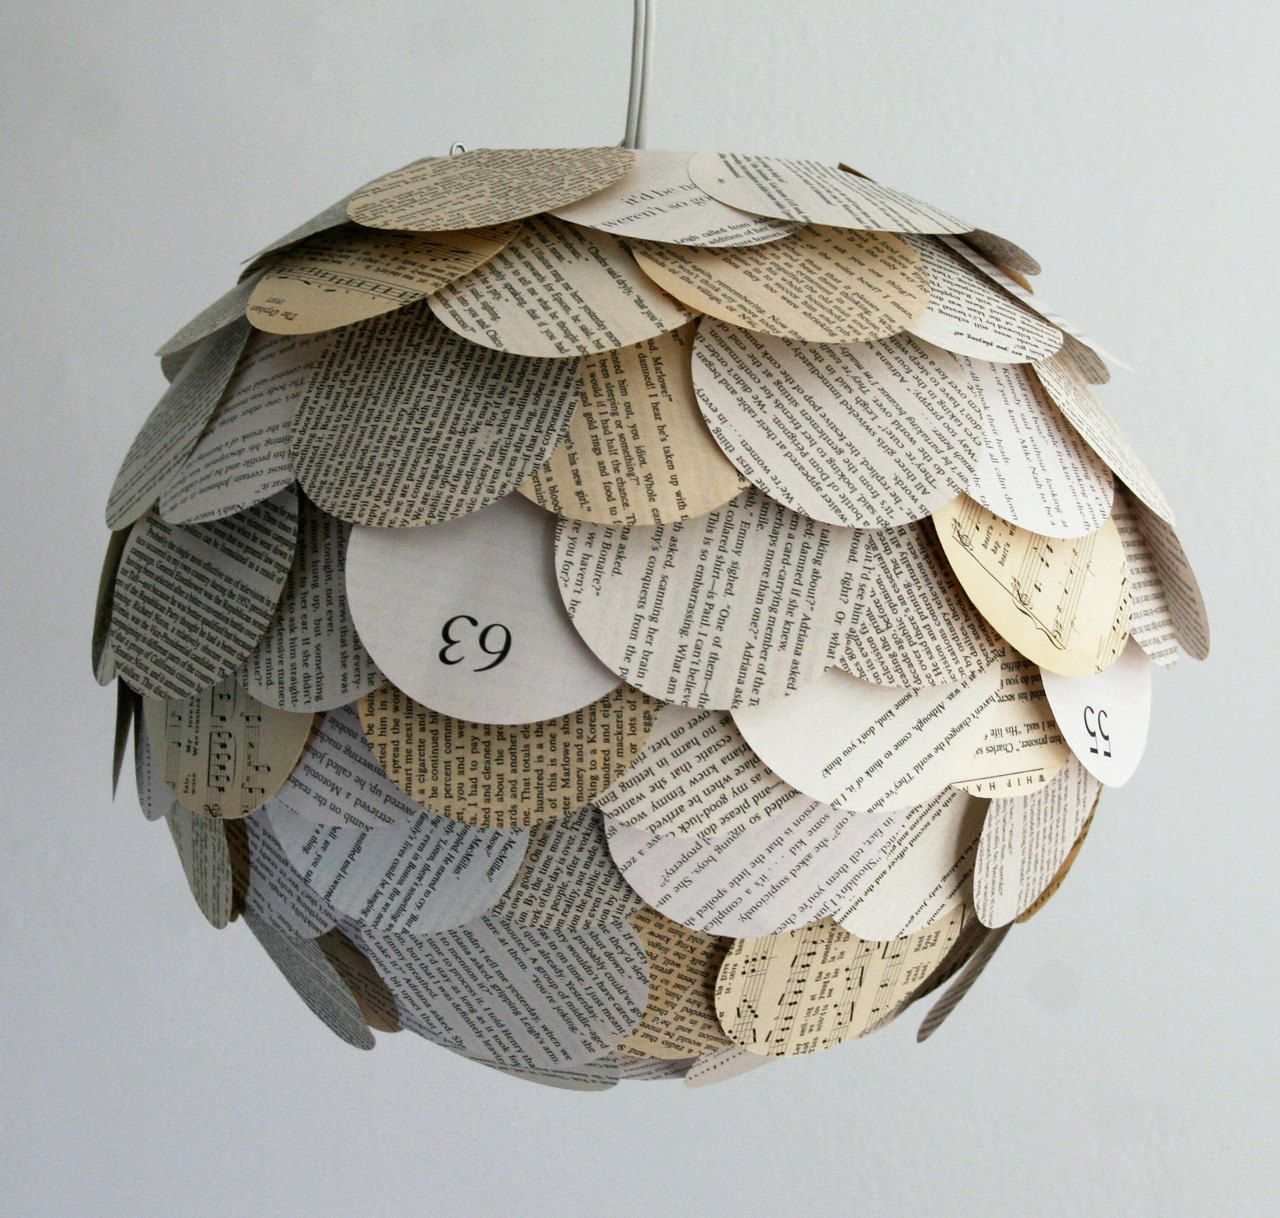 The original artichoke book page light this fun pendant lamp shade items similar to the manhasset mixed book page pendant light hanging paper artichoke lantern shade only on etsy mozeypictures Images